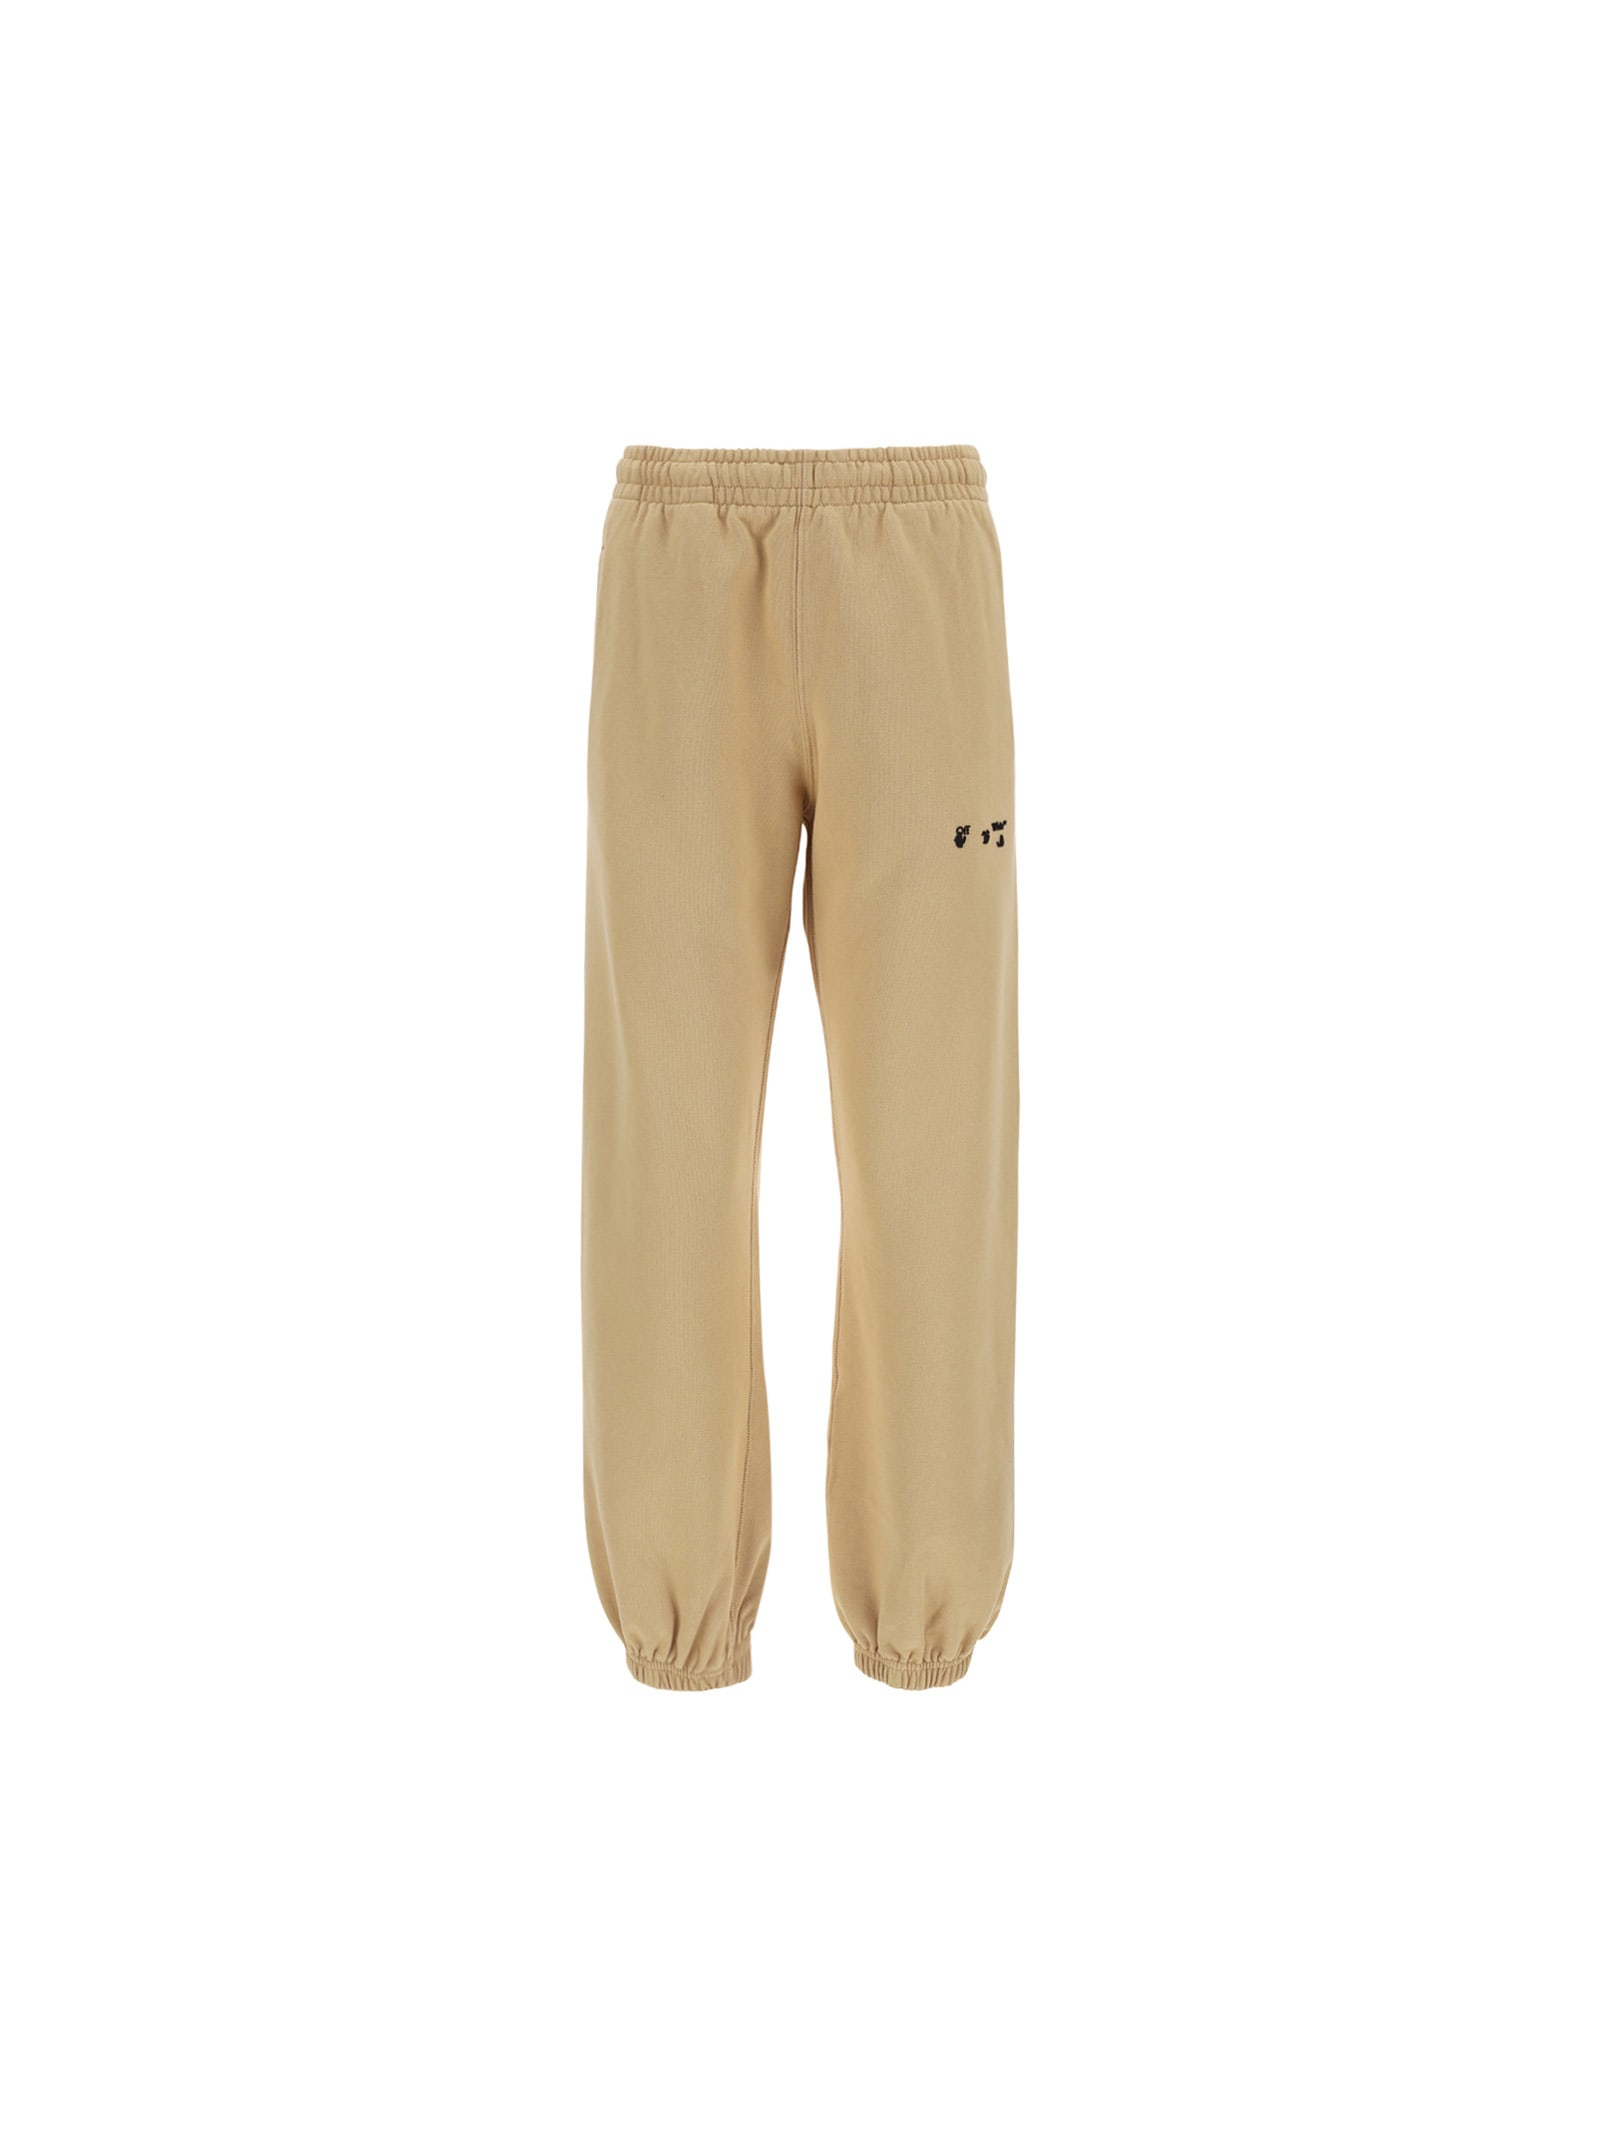 Off-White Clothing OFF WHITE SWEATPANTS